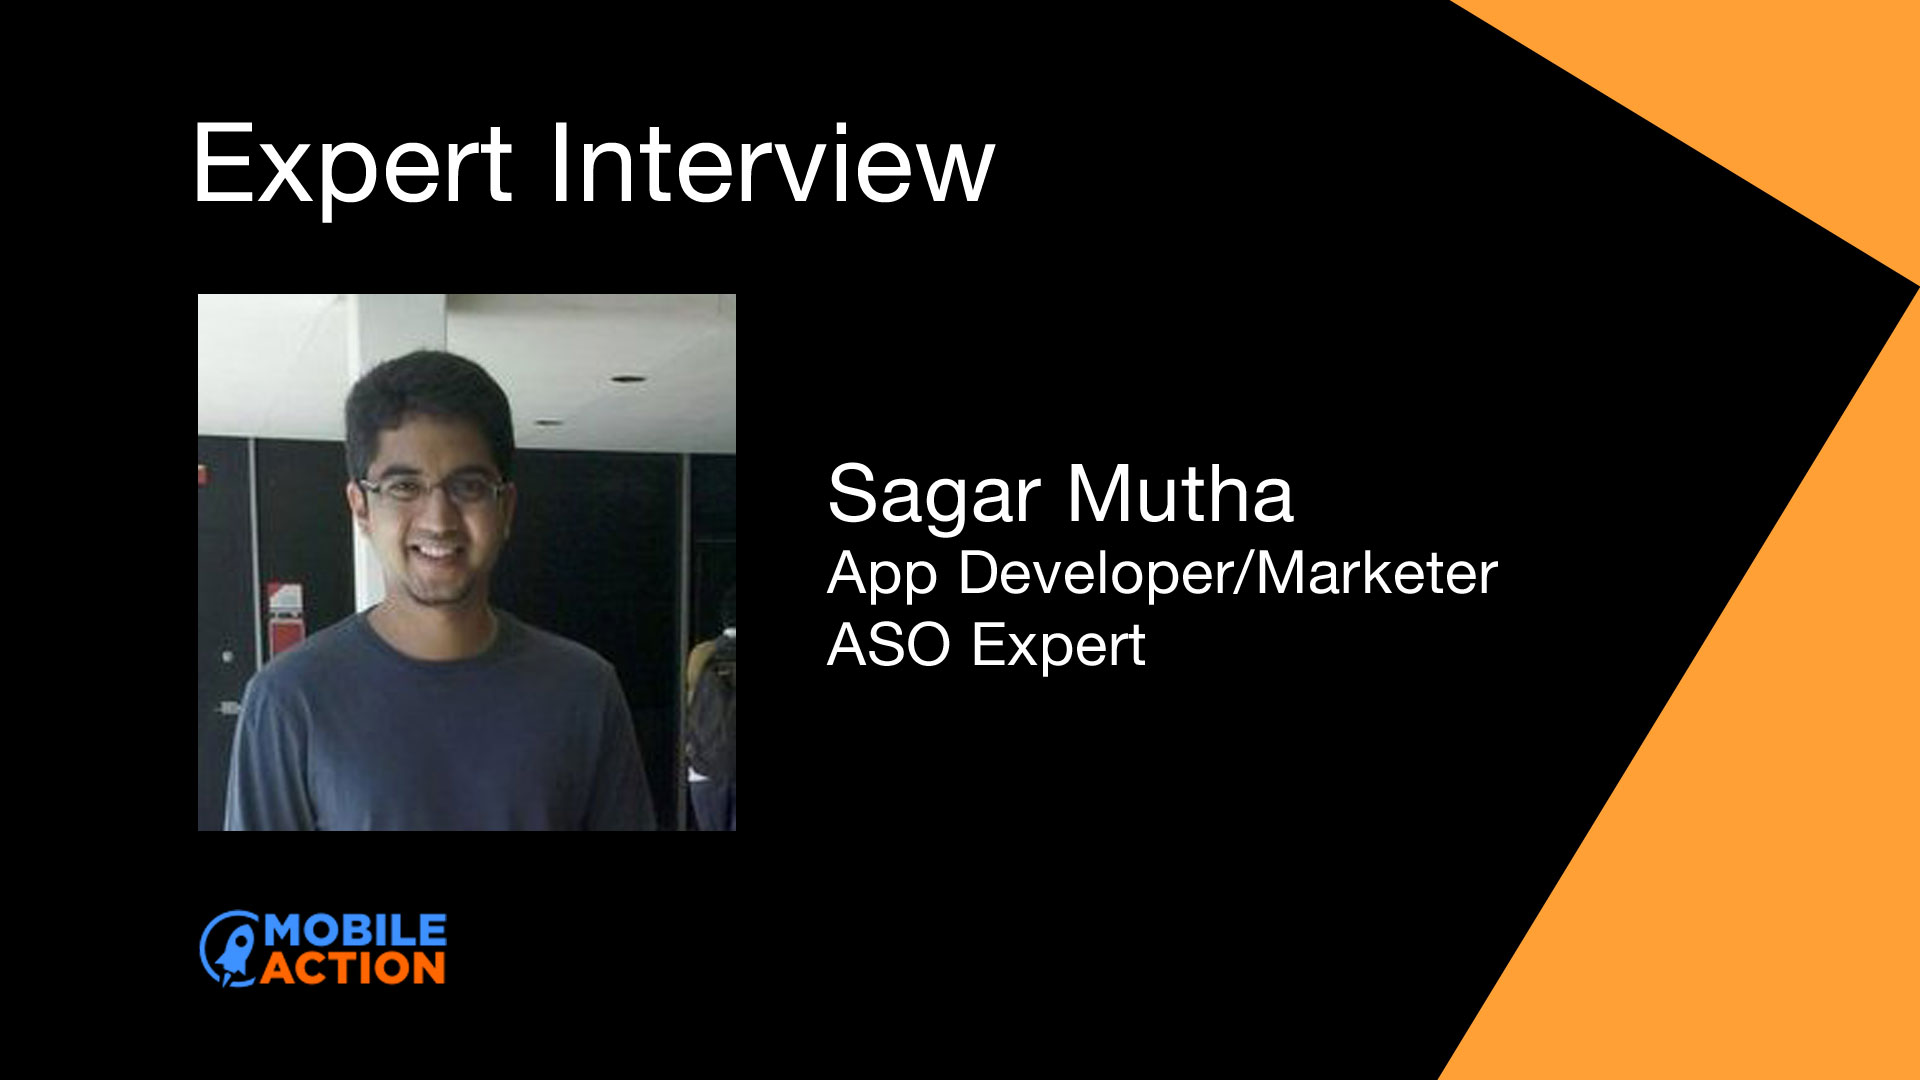 Sagar Mutha interview - download increase with ASO